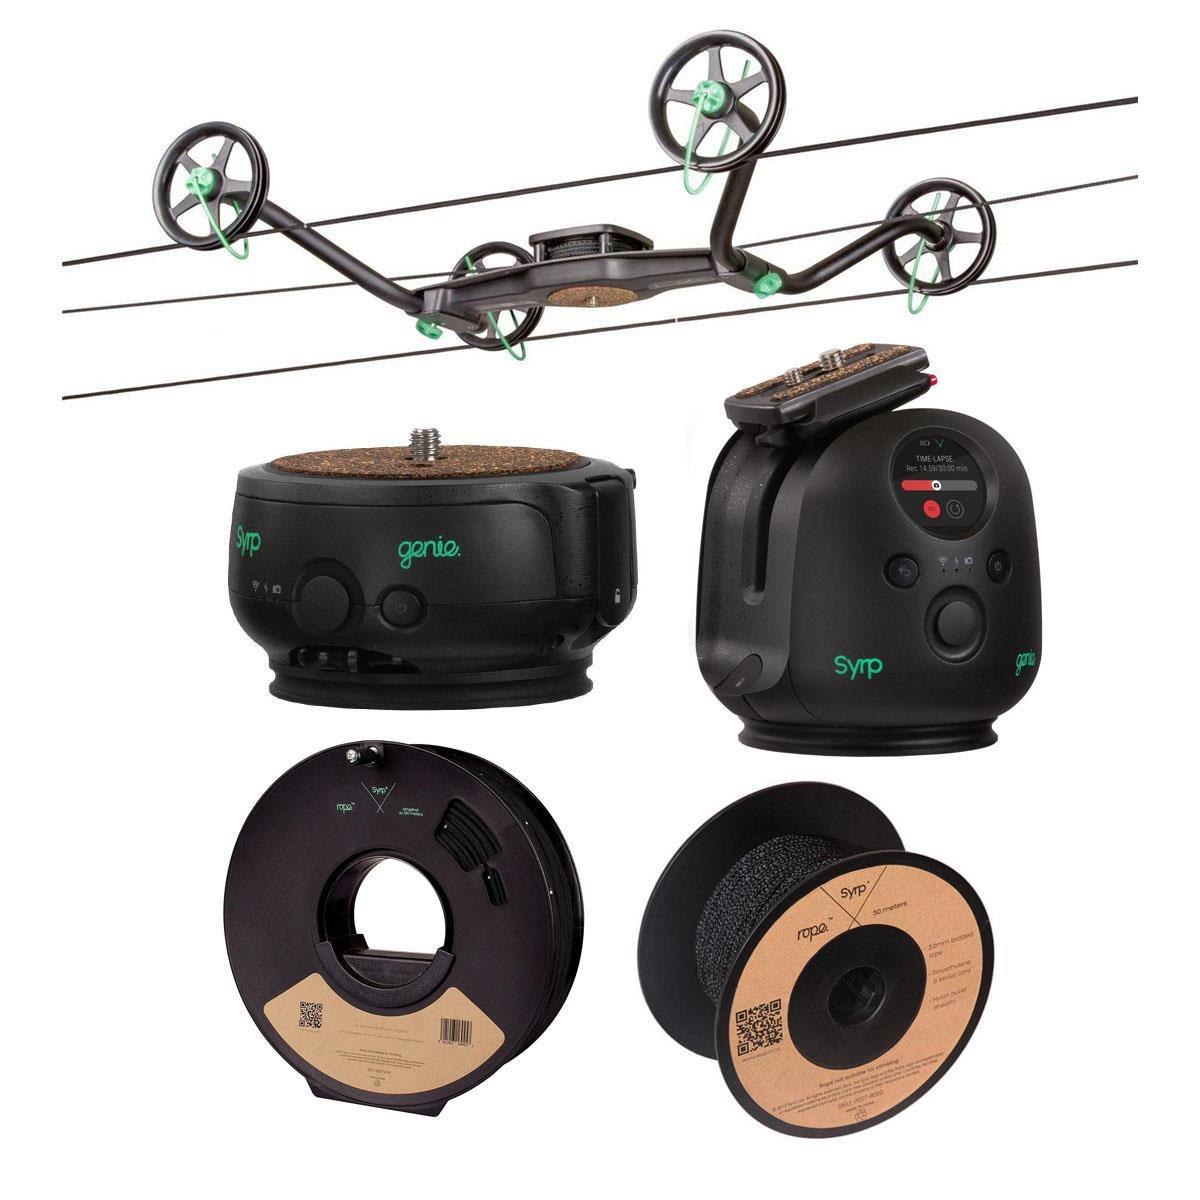 Syrp Slingshot 3-Axis Epic Kit 50m